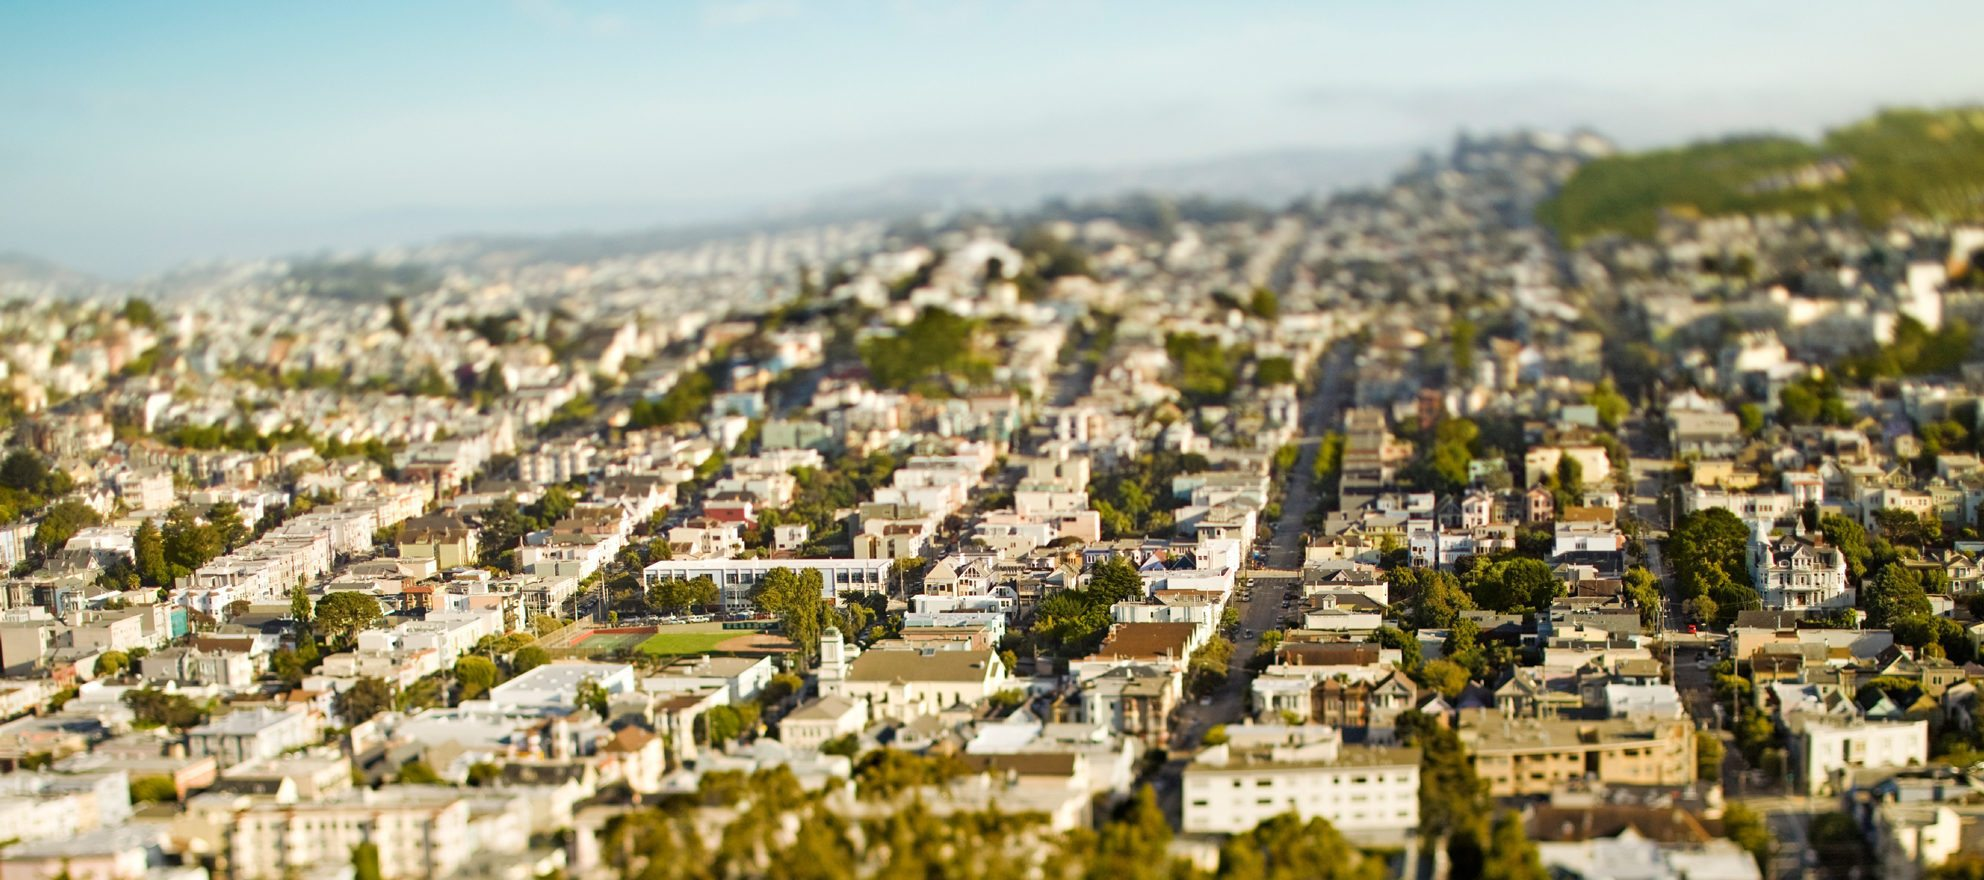 FNC Residential Price Index finds SF home prices falling